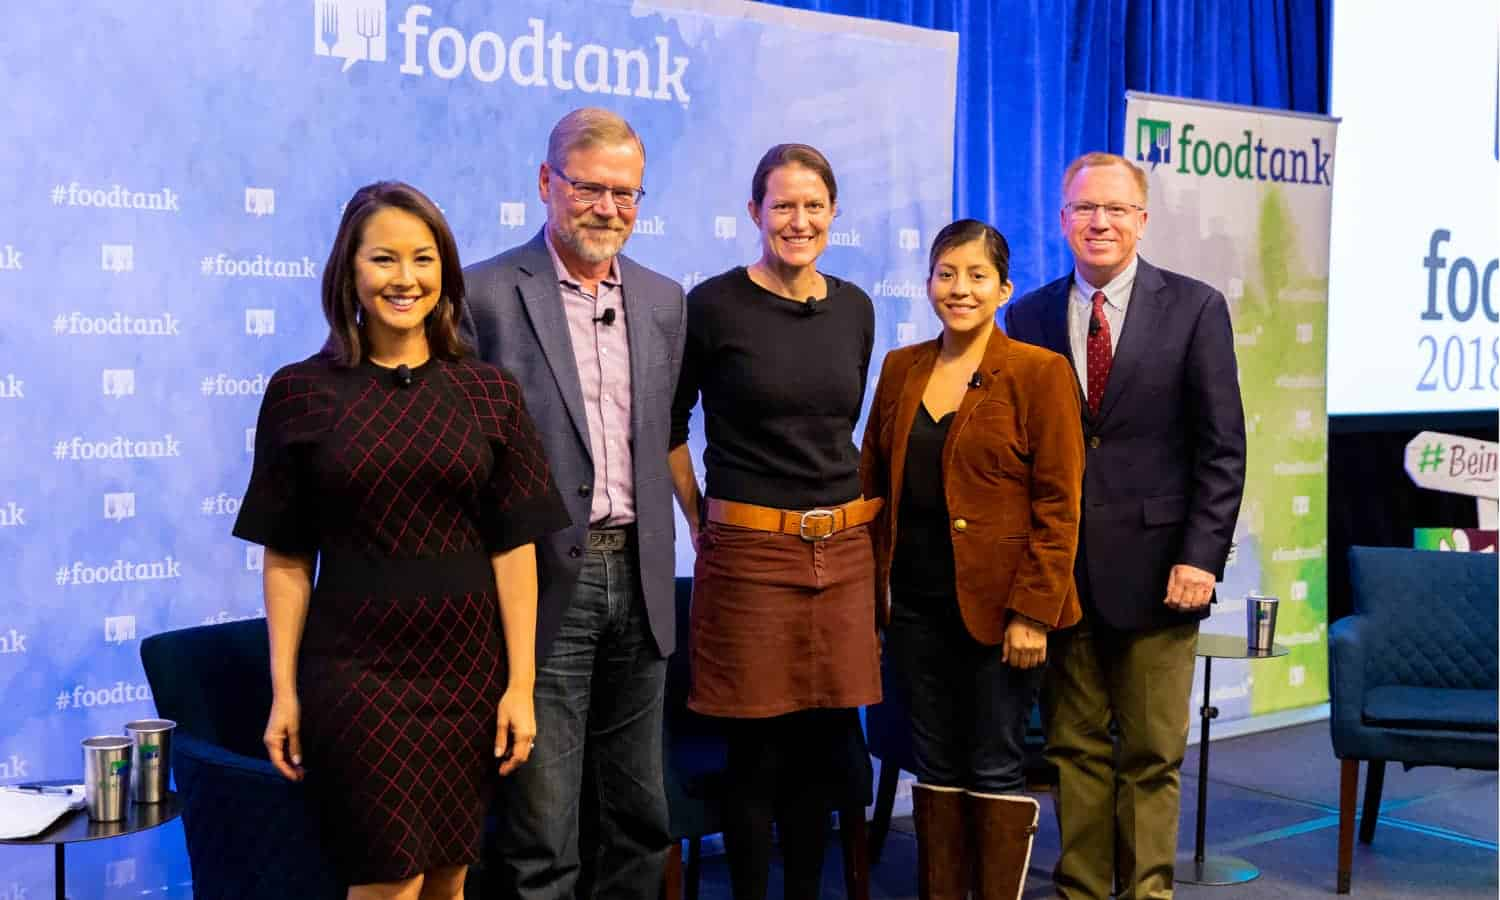 At Food Tank's San Diego Summit, a panel of academics, activists, and NGO organizers examine the practices and policies to improve food sustainability.